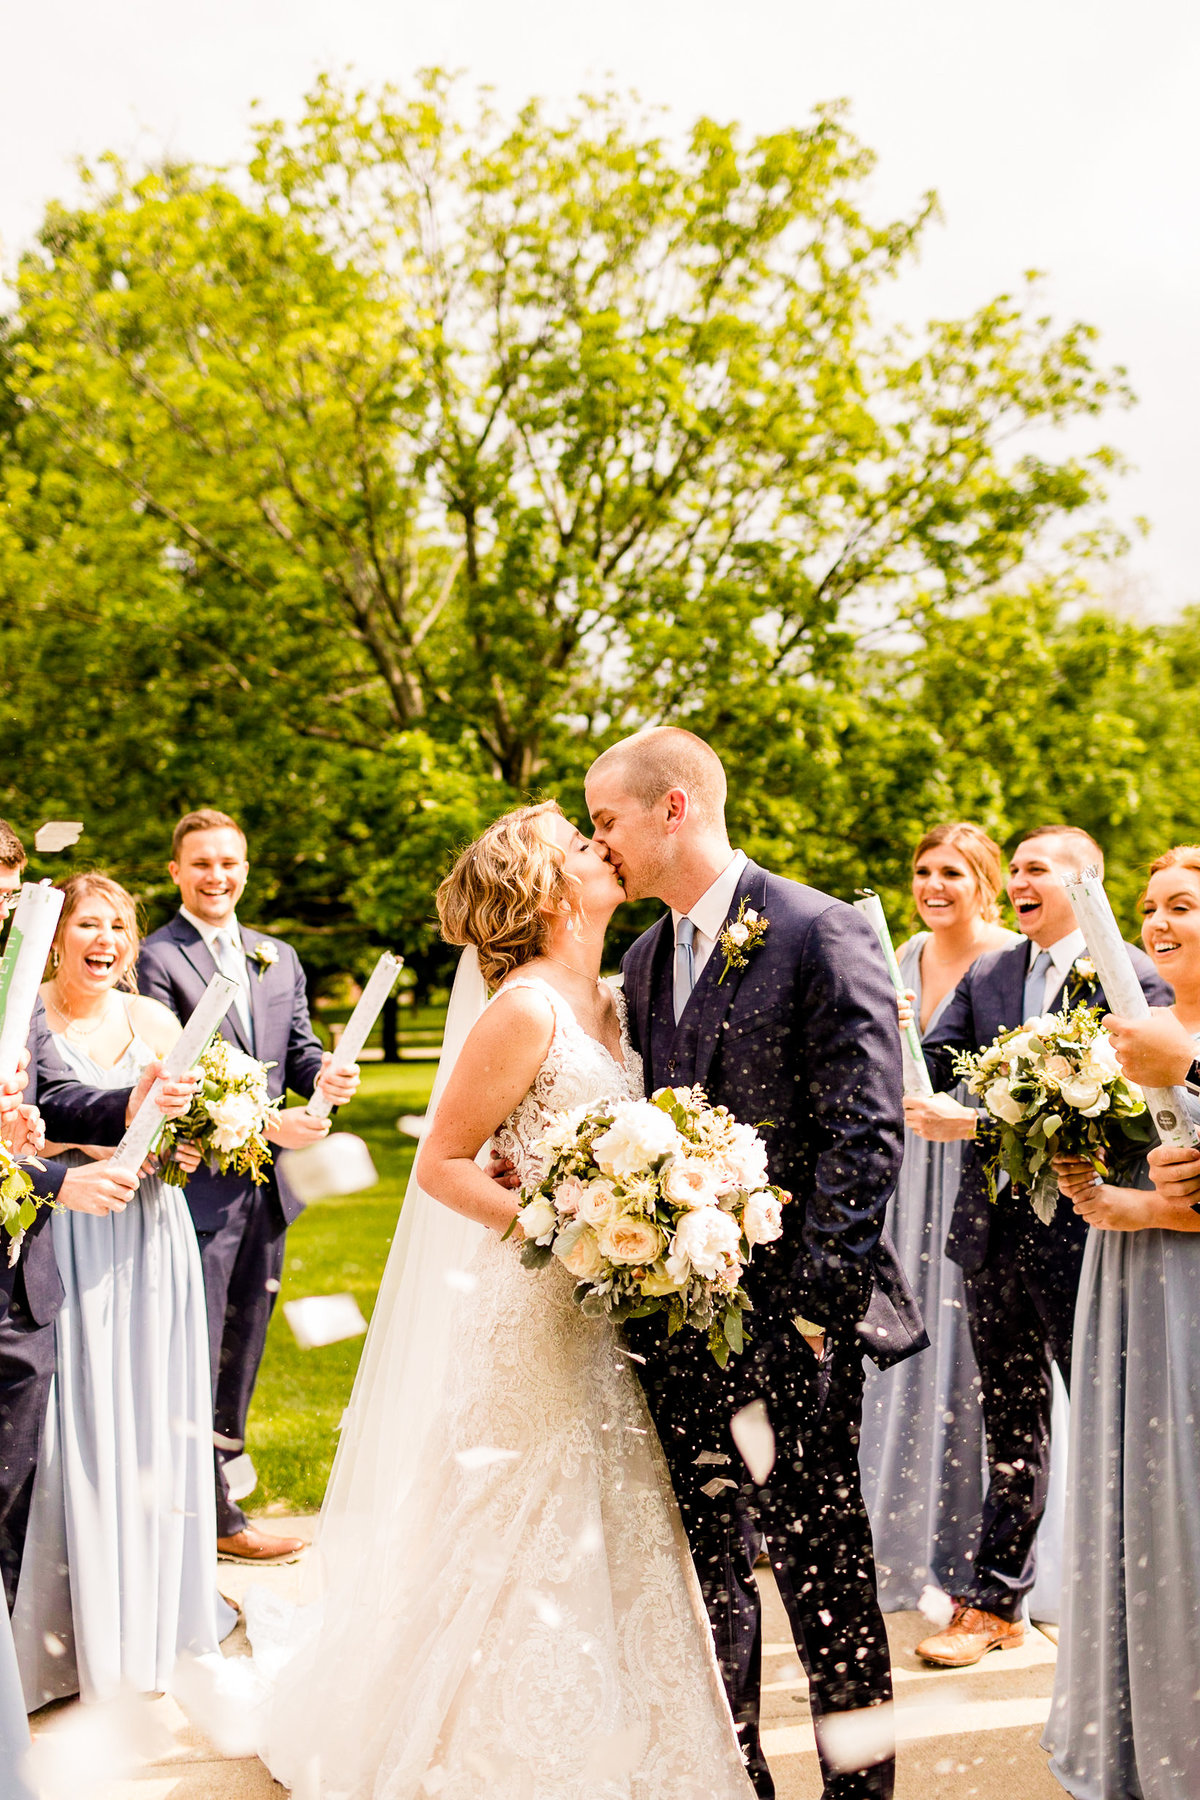 Caitlin and Luke Photography Wedding Engagement Luxury Illinois Destination Colorful Bright Joyful Cheerful Photographer 842